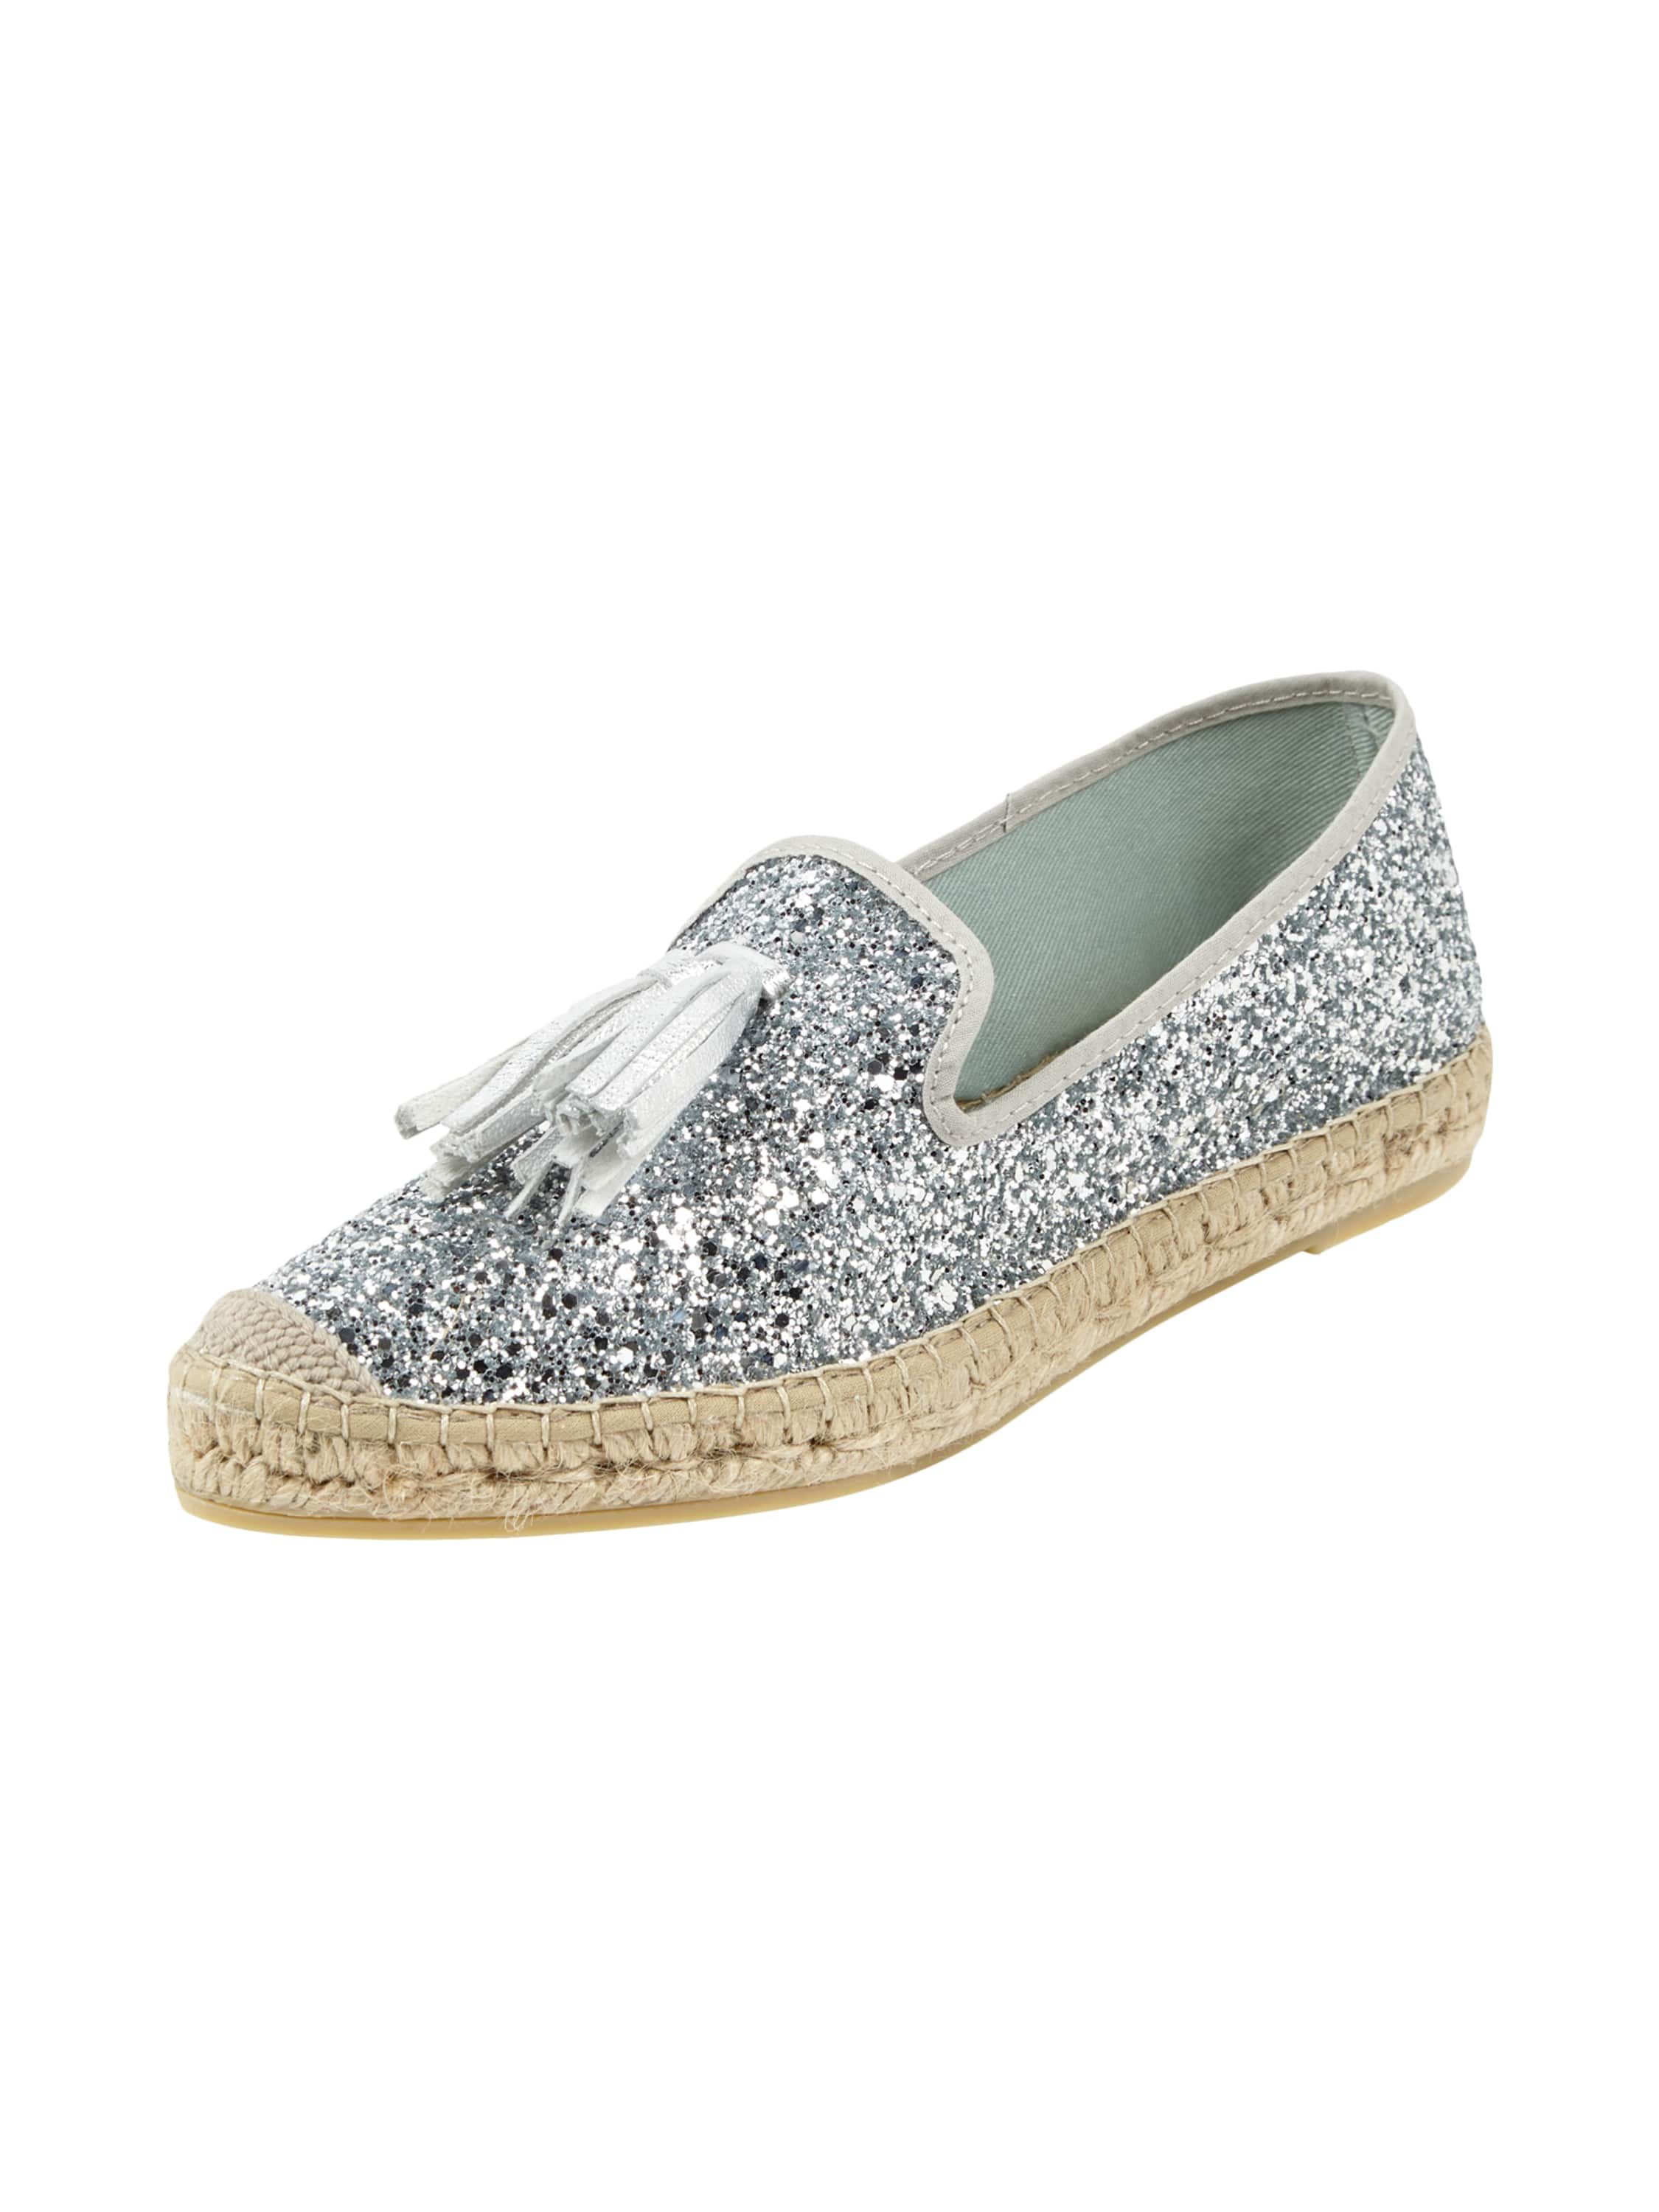 vidorreta espadrilles aus echtem leder mit glitter effekt. Black Bedroom Furniture Sets. Home Design Ideas